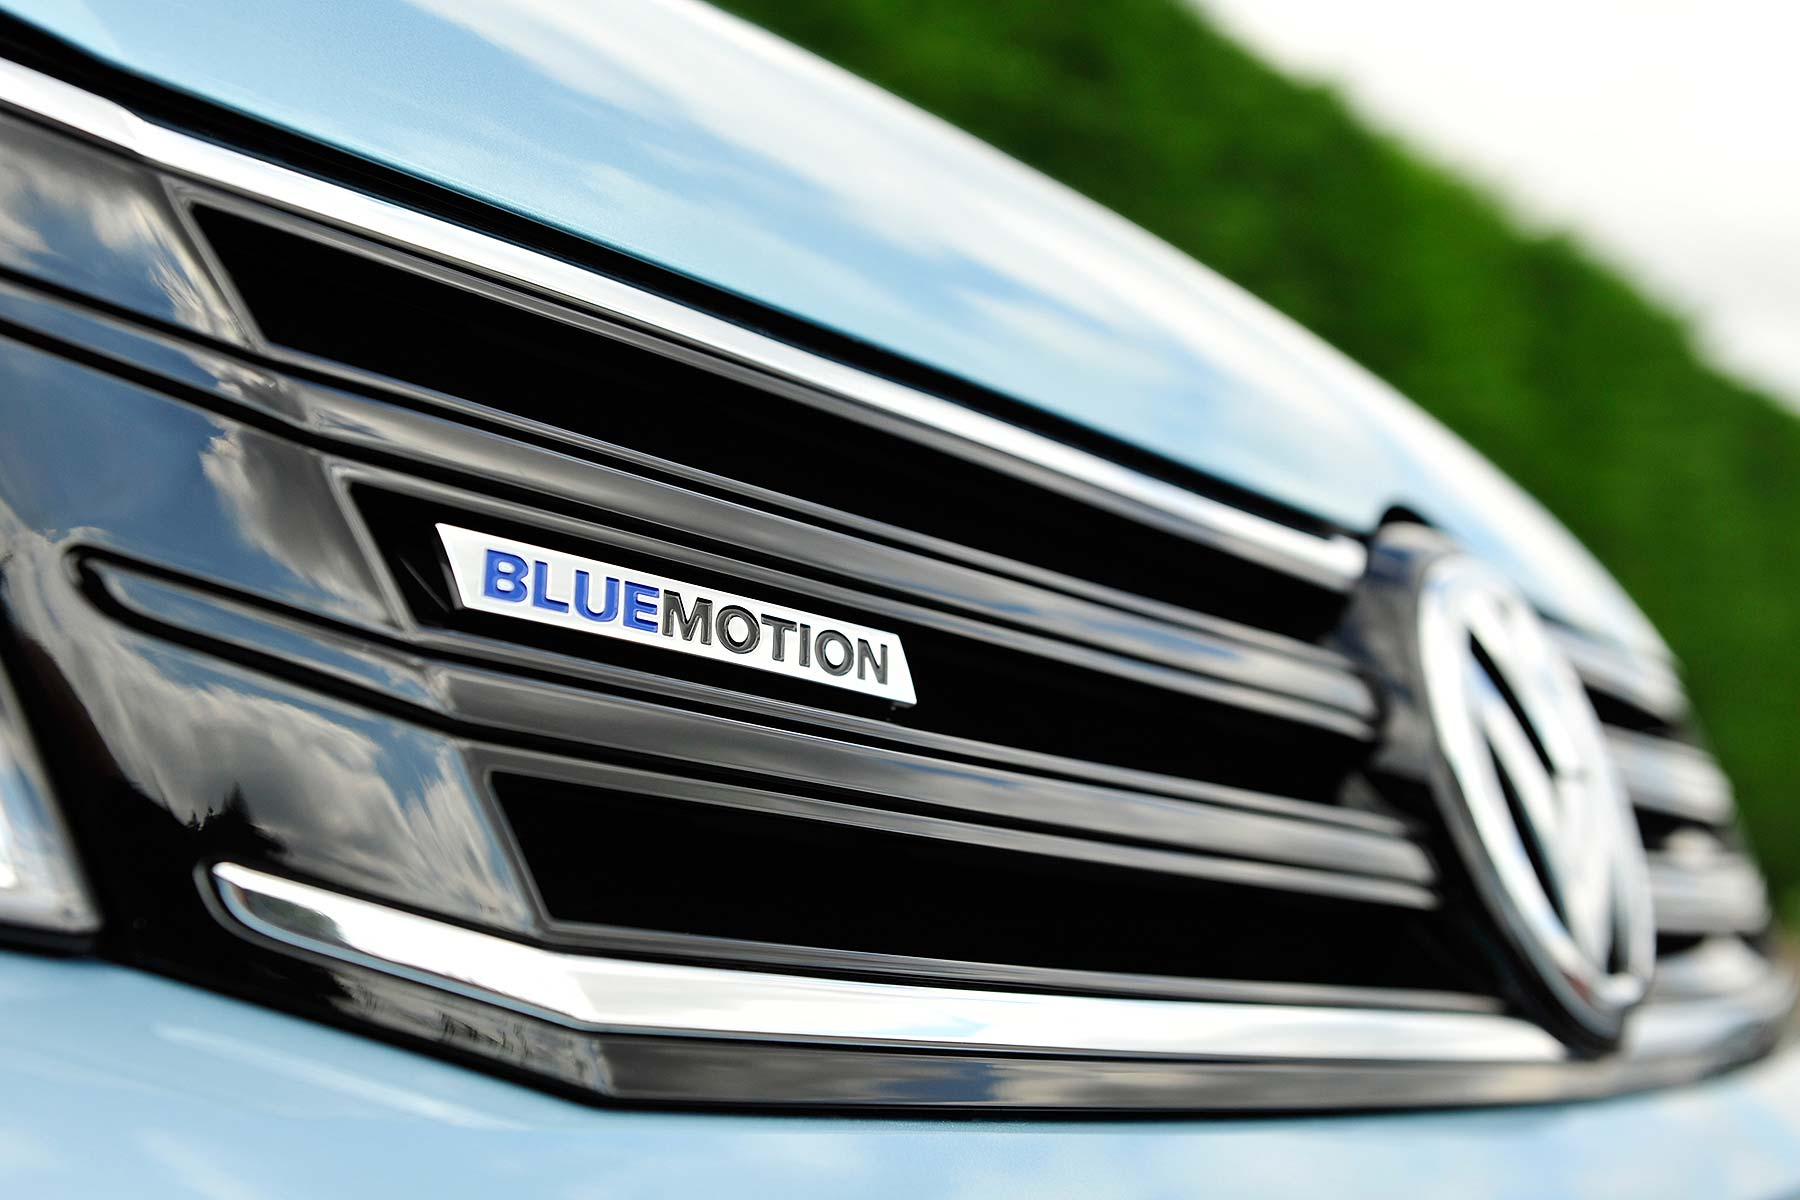 Volkswagen Bluemotion